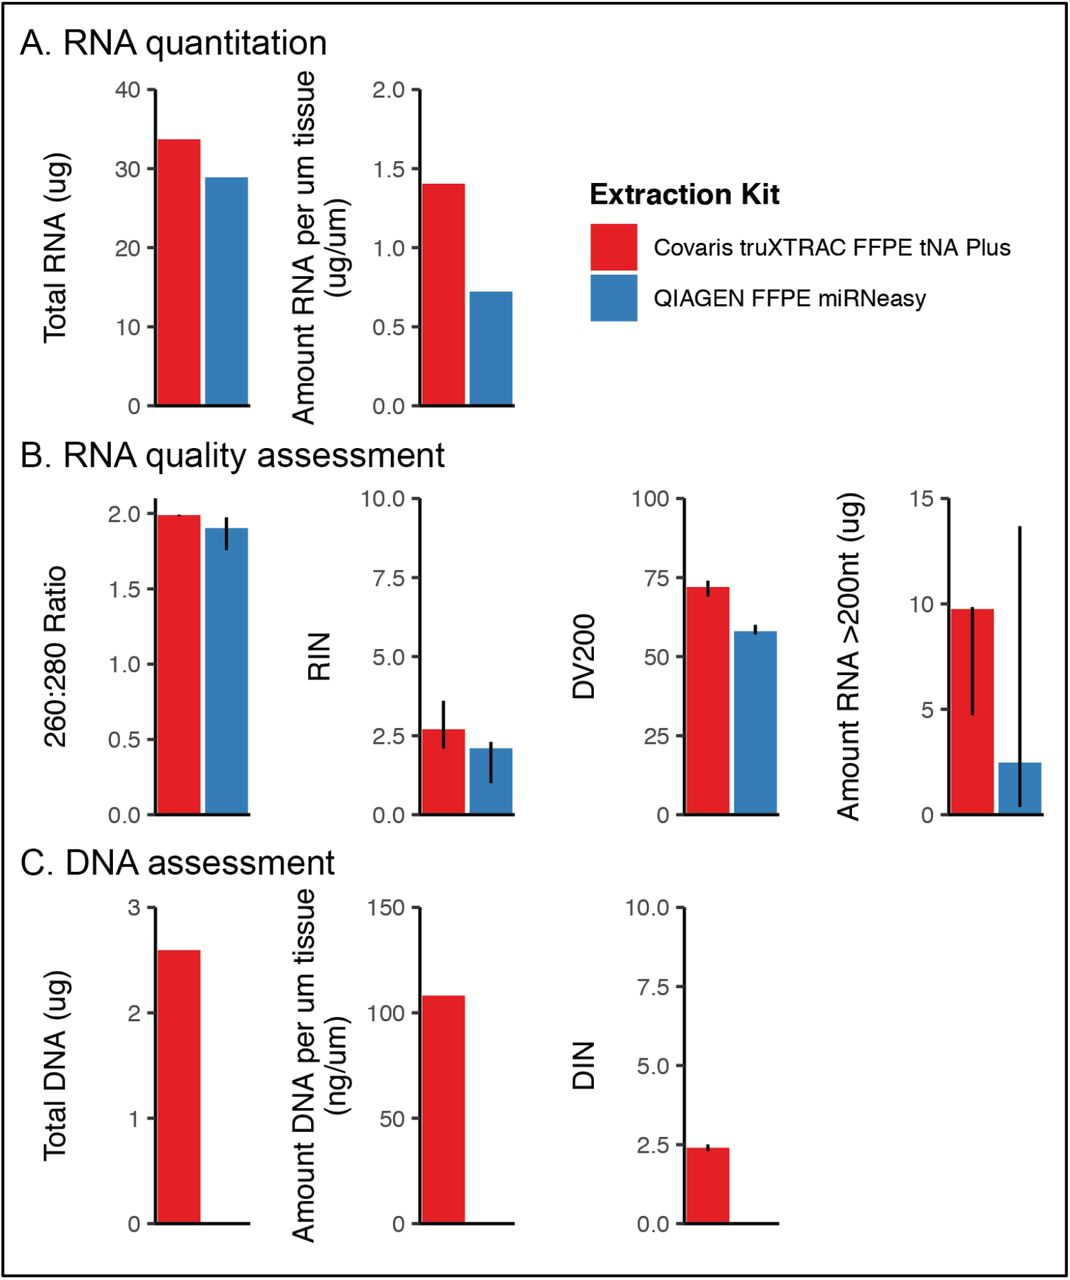 Nucleic acid extraction quantitation and quality assessment RNA and/or DNA extracted by either the Covaris truXTRAC FFPE tNA Plus kit (red) or the QIAGEN FFPE miRNeasy kit (blue) were evaluated by several measures. (A) RNA was quantified and summarized by the total amount (ug) extracted across triplicates (Covaris) or three elutions (QIAGEN). This value was also summarized by the amount of nucleic acid extracted per micron (um) of tissue. (B) RNA quality was assessed for purity (260:280 ratio) and quality (RNA integrity number [RIN], DV200). Error bars represent the range of values across Covaris replicates (n=3) or the three elutions from the QIAGEN protocol. (C) DNA quantity was summarized by the total amount (ug) extracted across triplicates in the Covaris protocol and the amount per micron of tissue extracted. The DNA integrity number (DIN) was used to summarize quality.